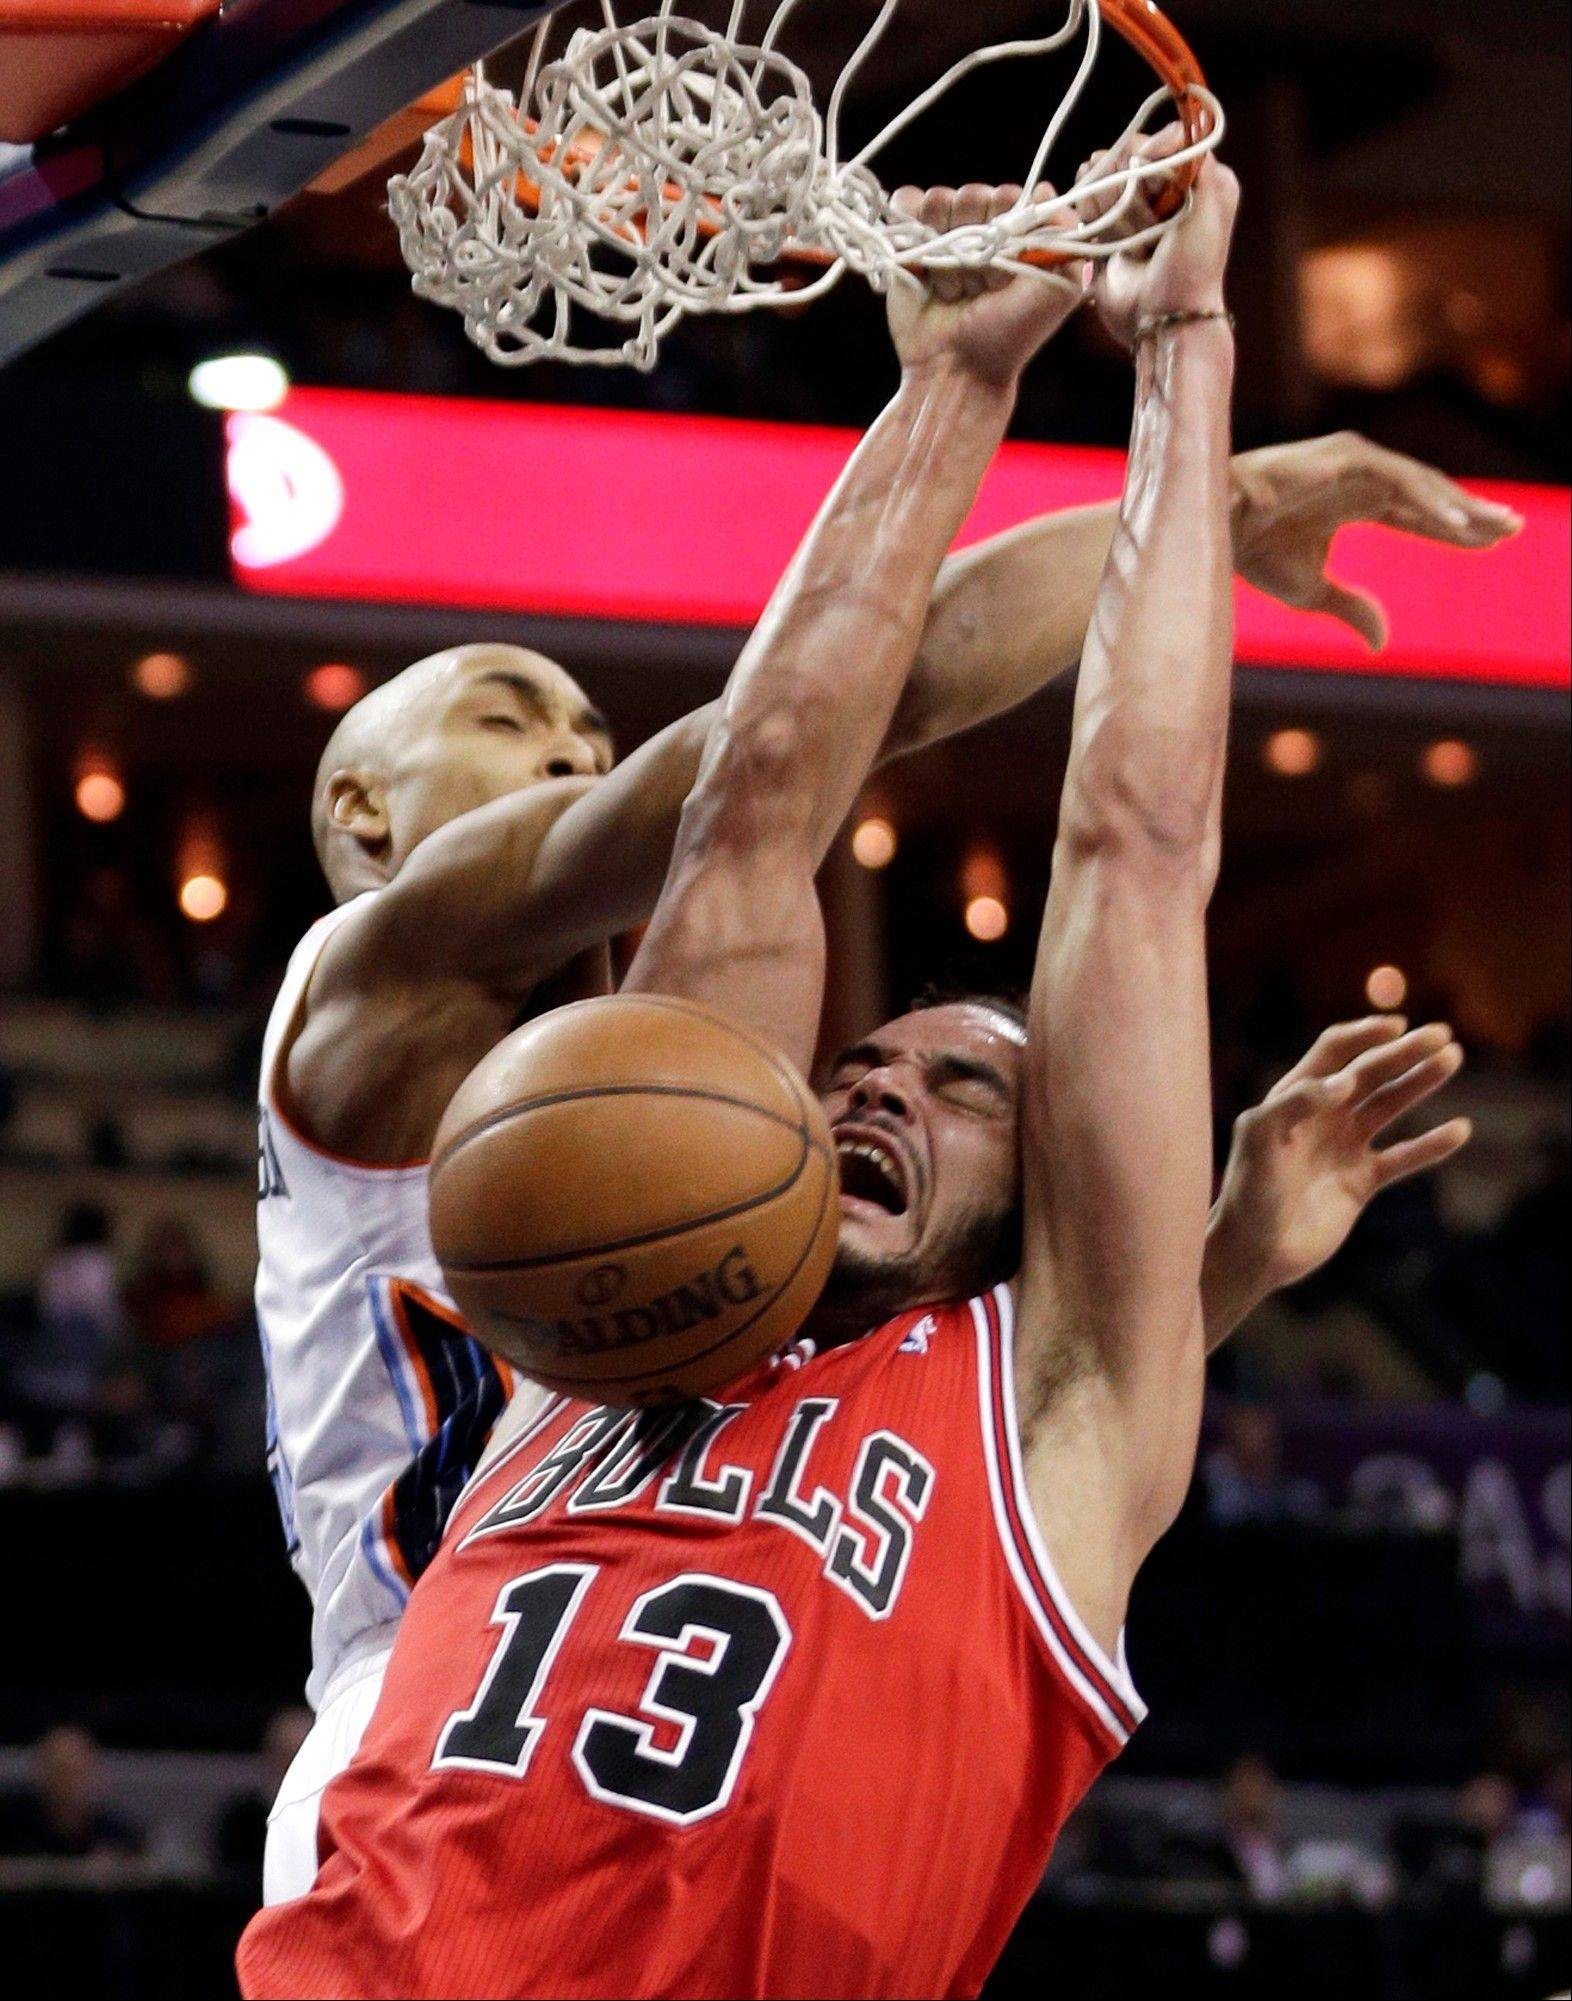 Chicago Bulls' Joakim Noah (13) dunks against Charlotte Bobcats' Gerald Henderson during the second half of an NBA basketball game in Charlotte, N.C., Saturday, Jan. 25, 2014. The Bulls won 89-87.